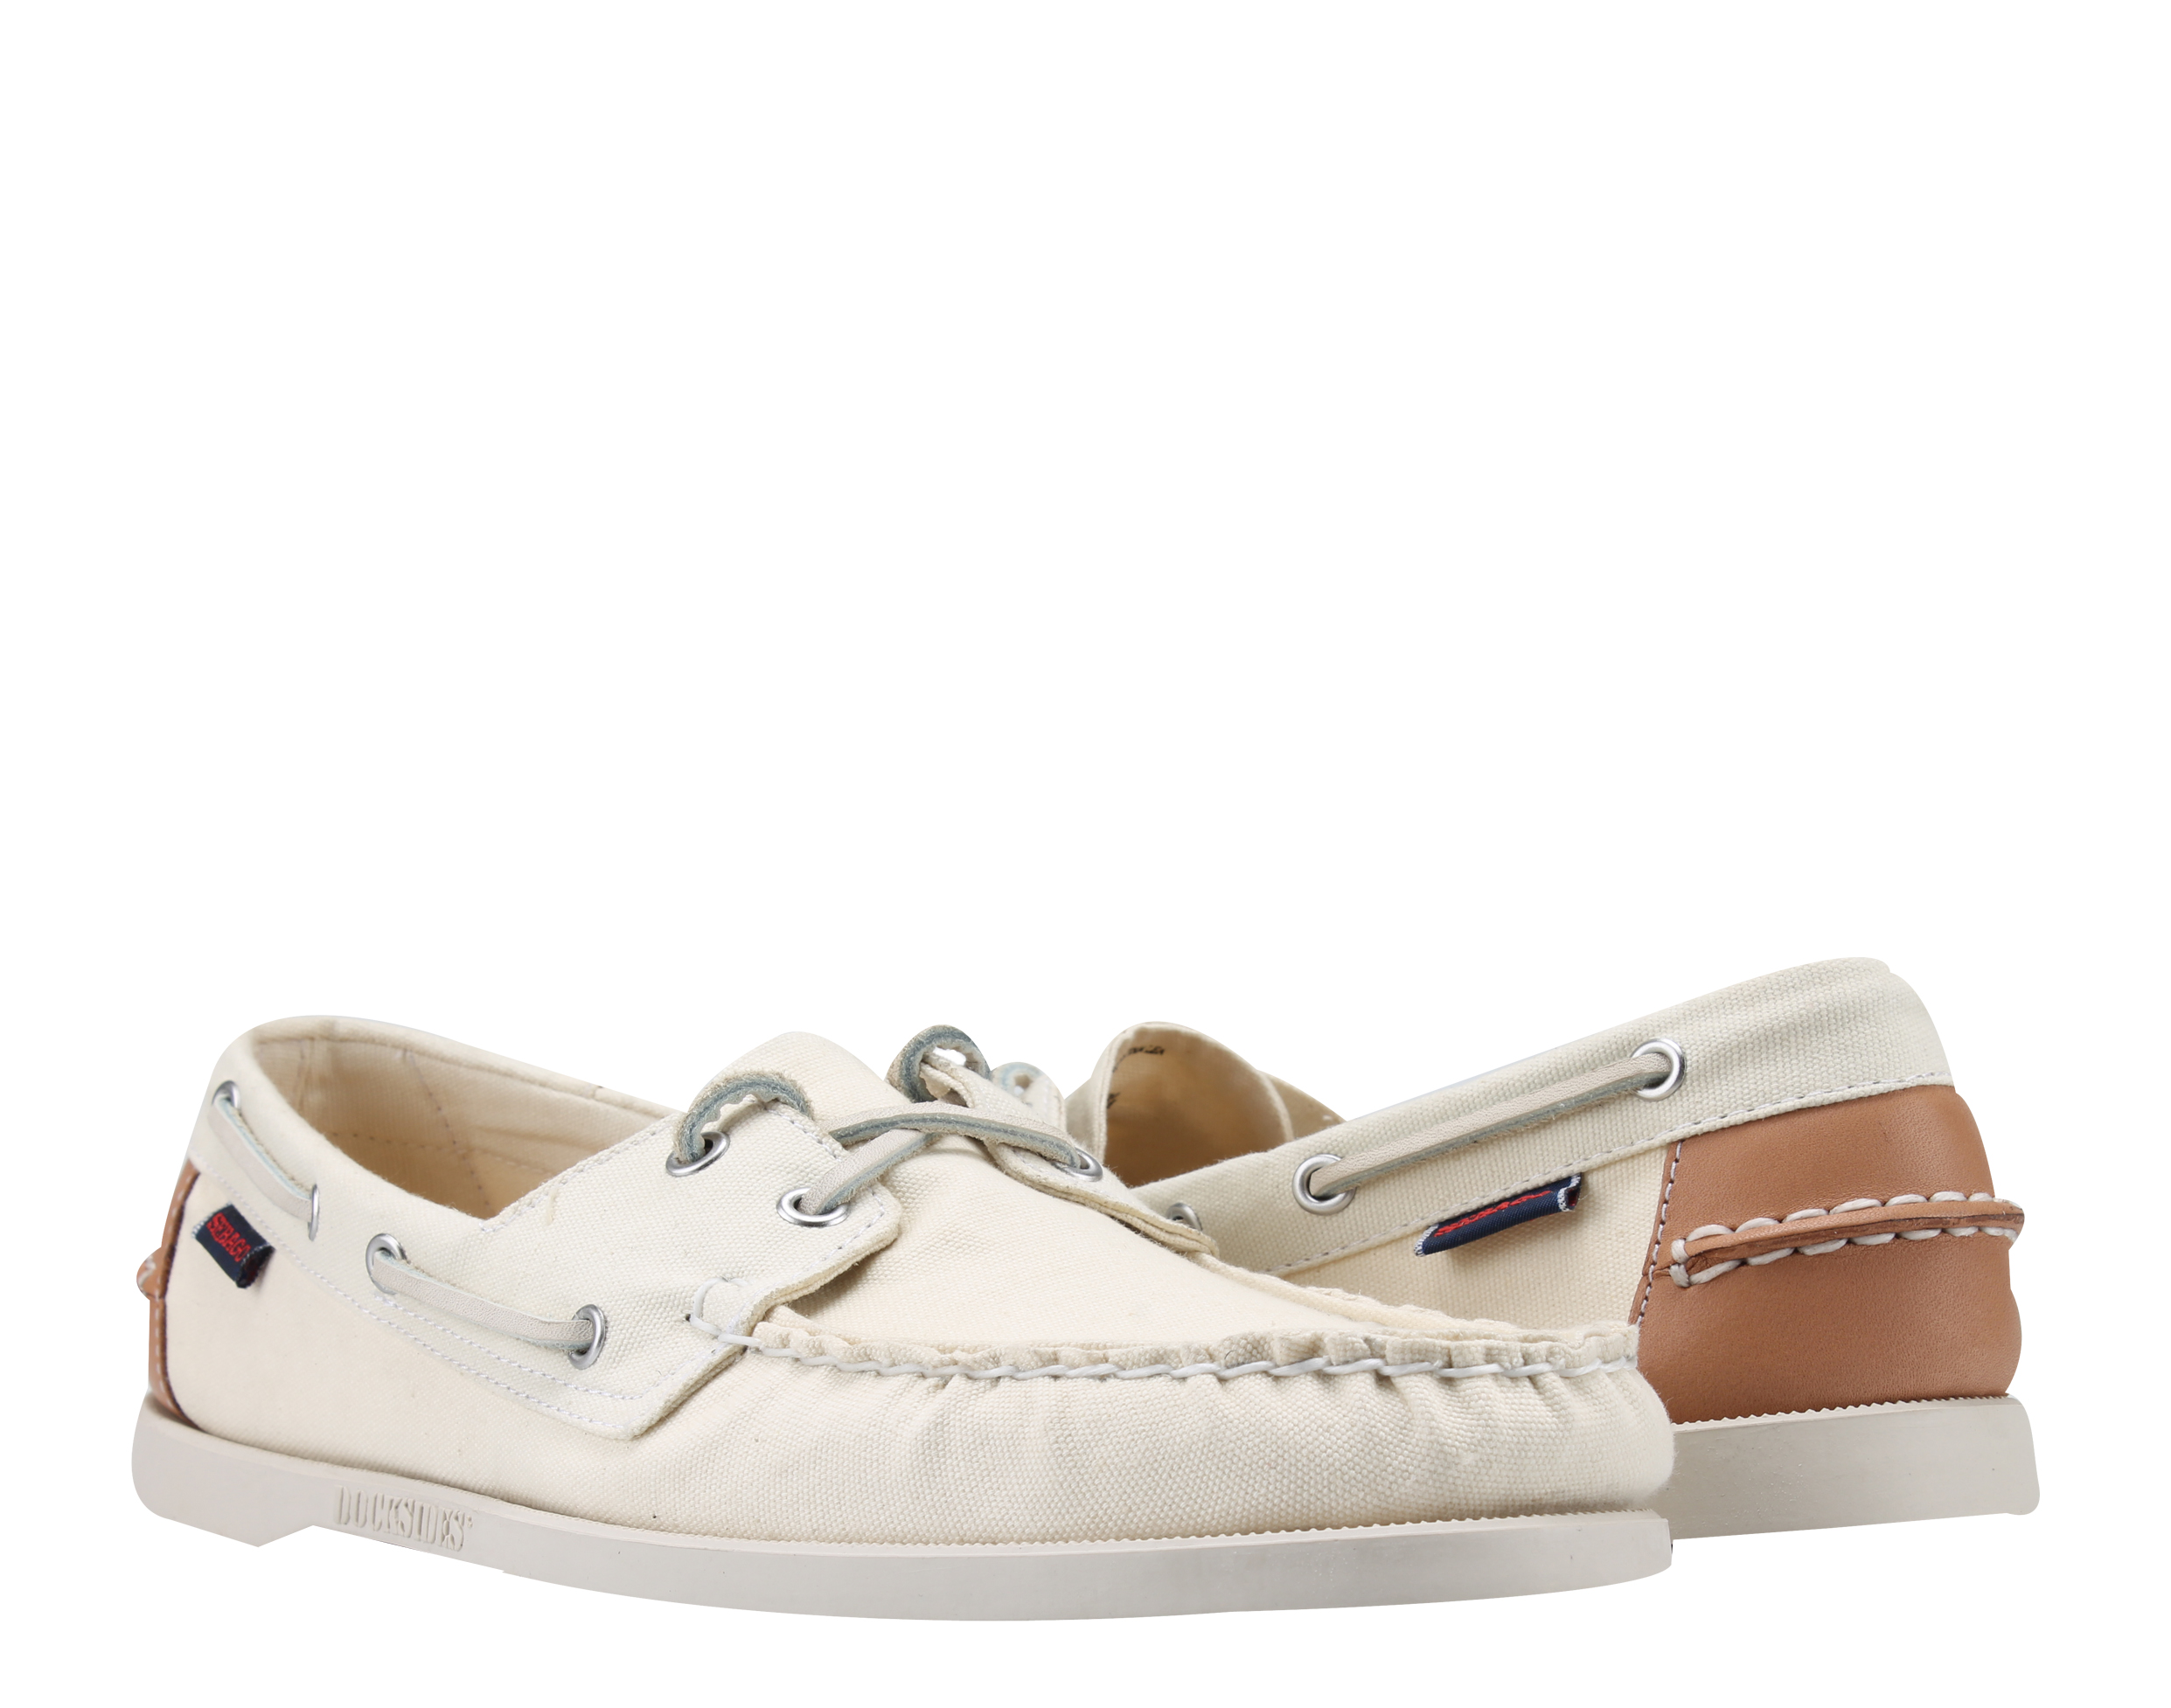 Sebago Docksides Beige Canvas Tan Leather Men's Boat Shoes B720143 by